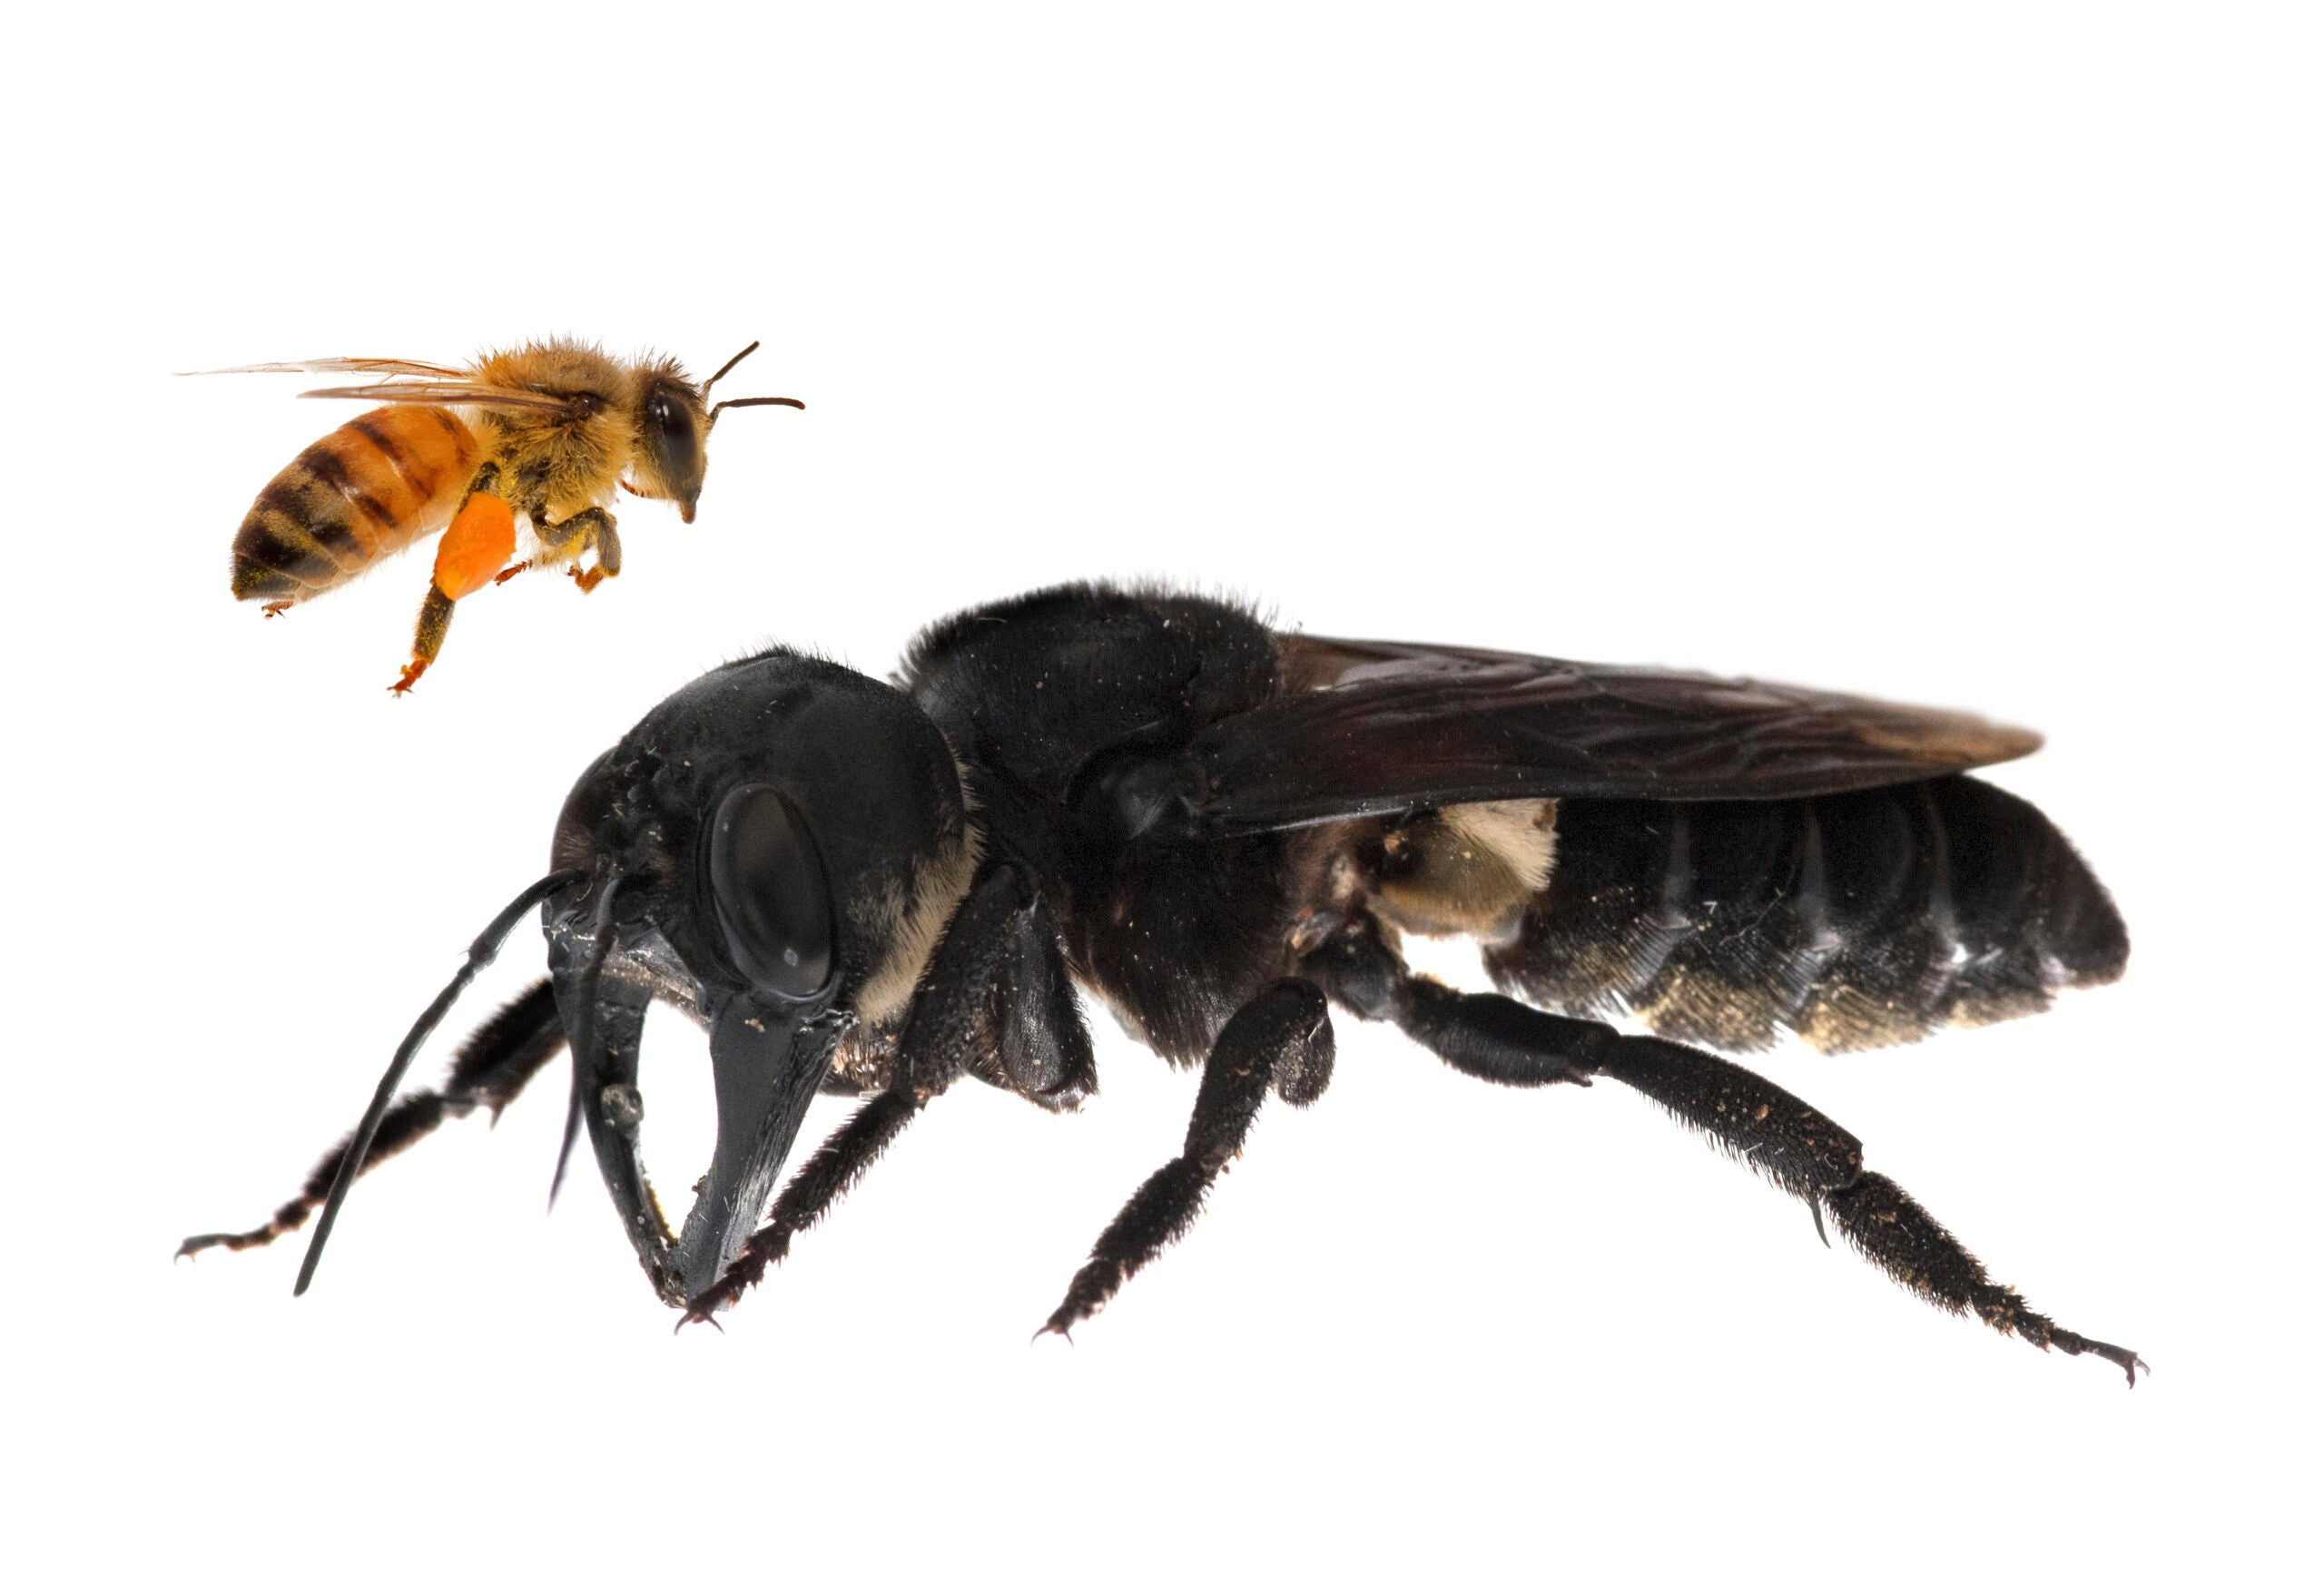 Giant bee Wallace's discovery extinction